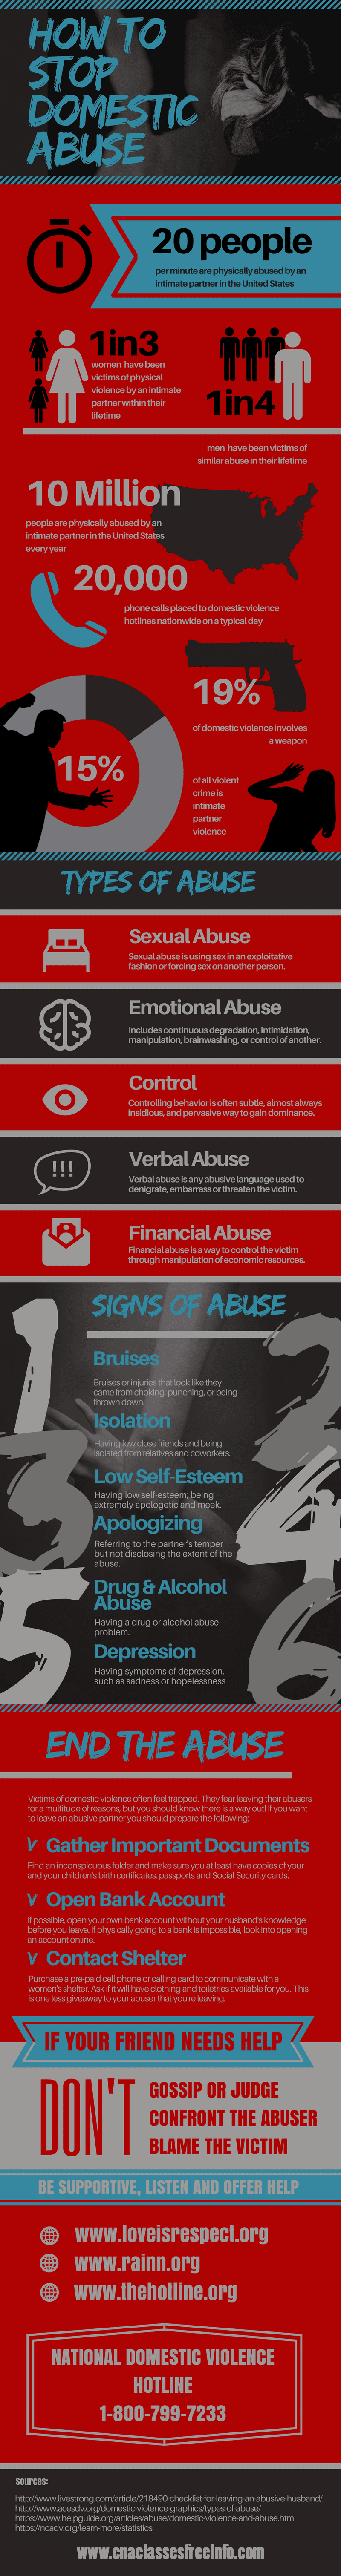 domestic abuse Infographic-1-2